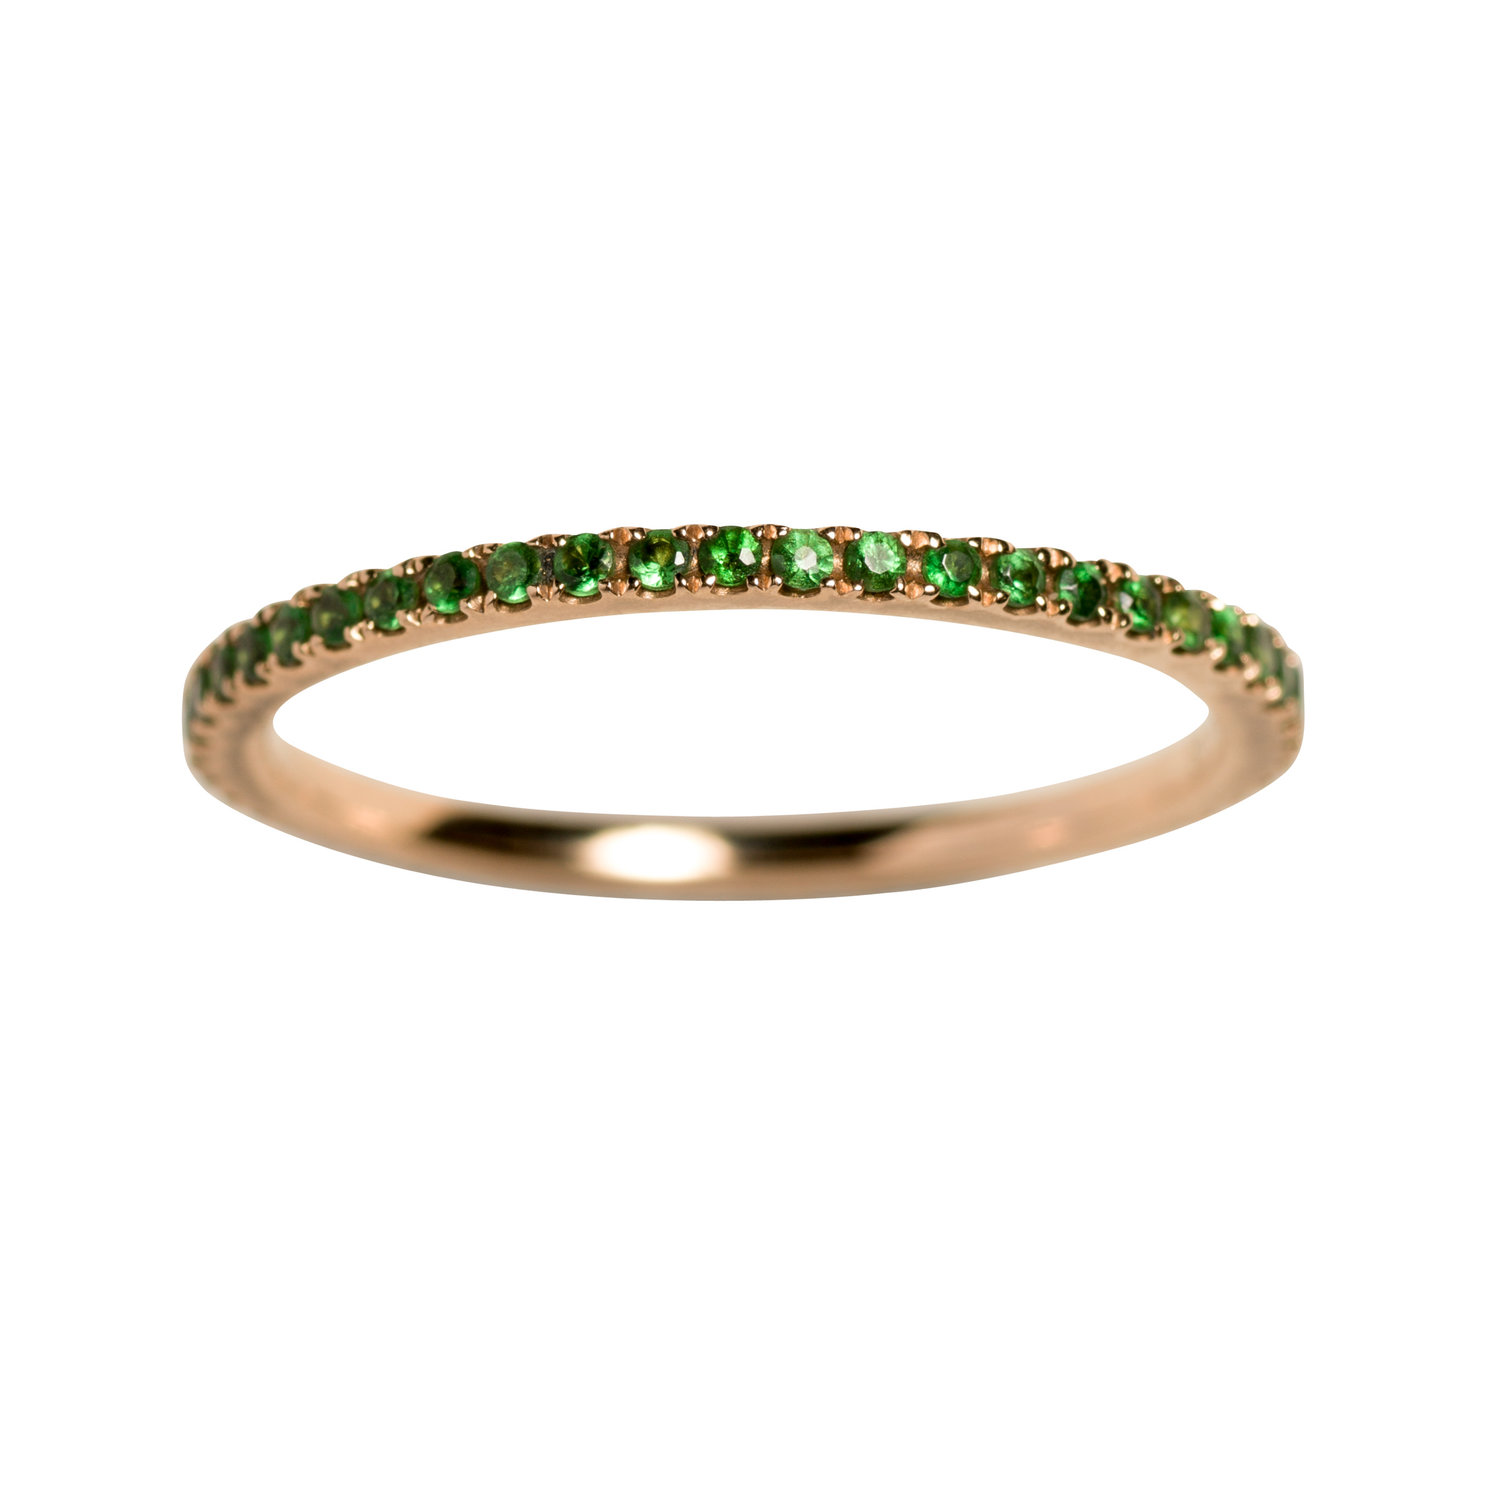 PETIT OLIVIA RING  16.000 NOK. 18 kt gold with green sapphires